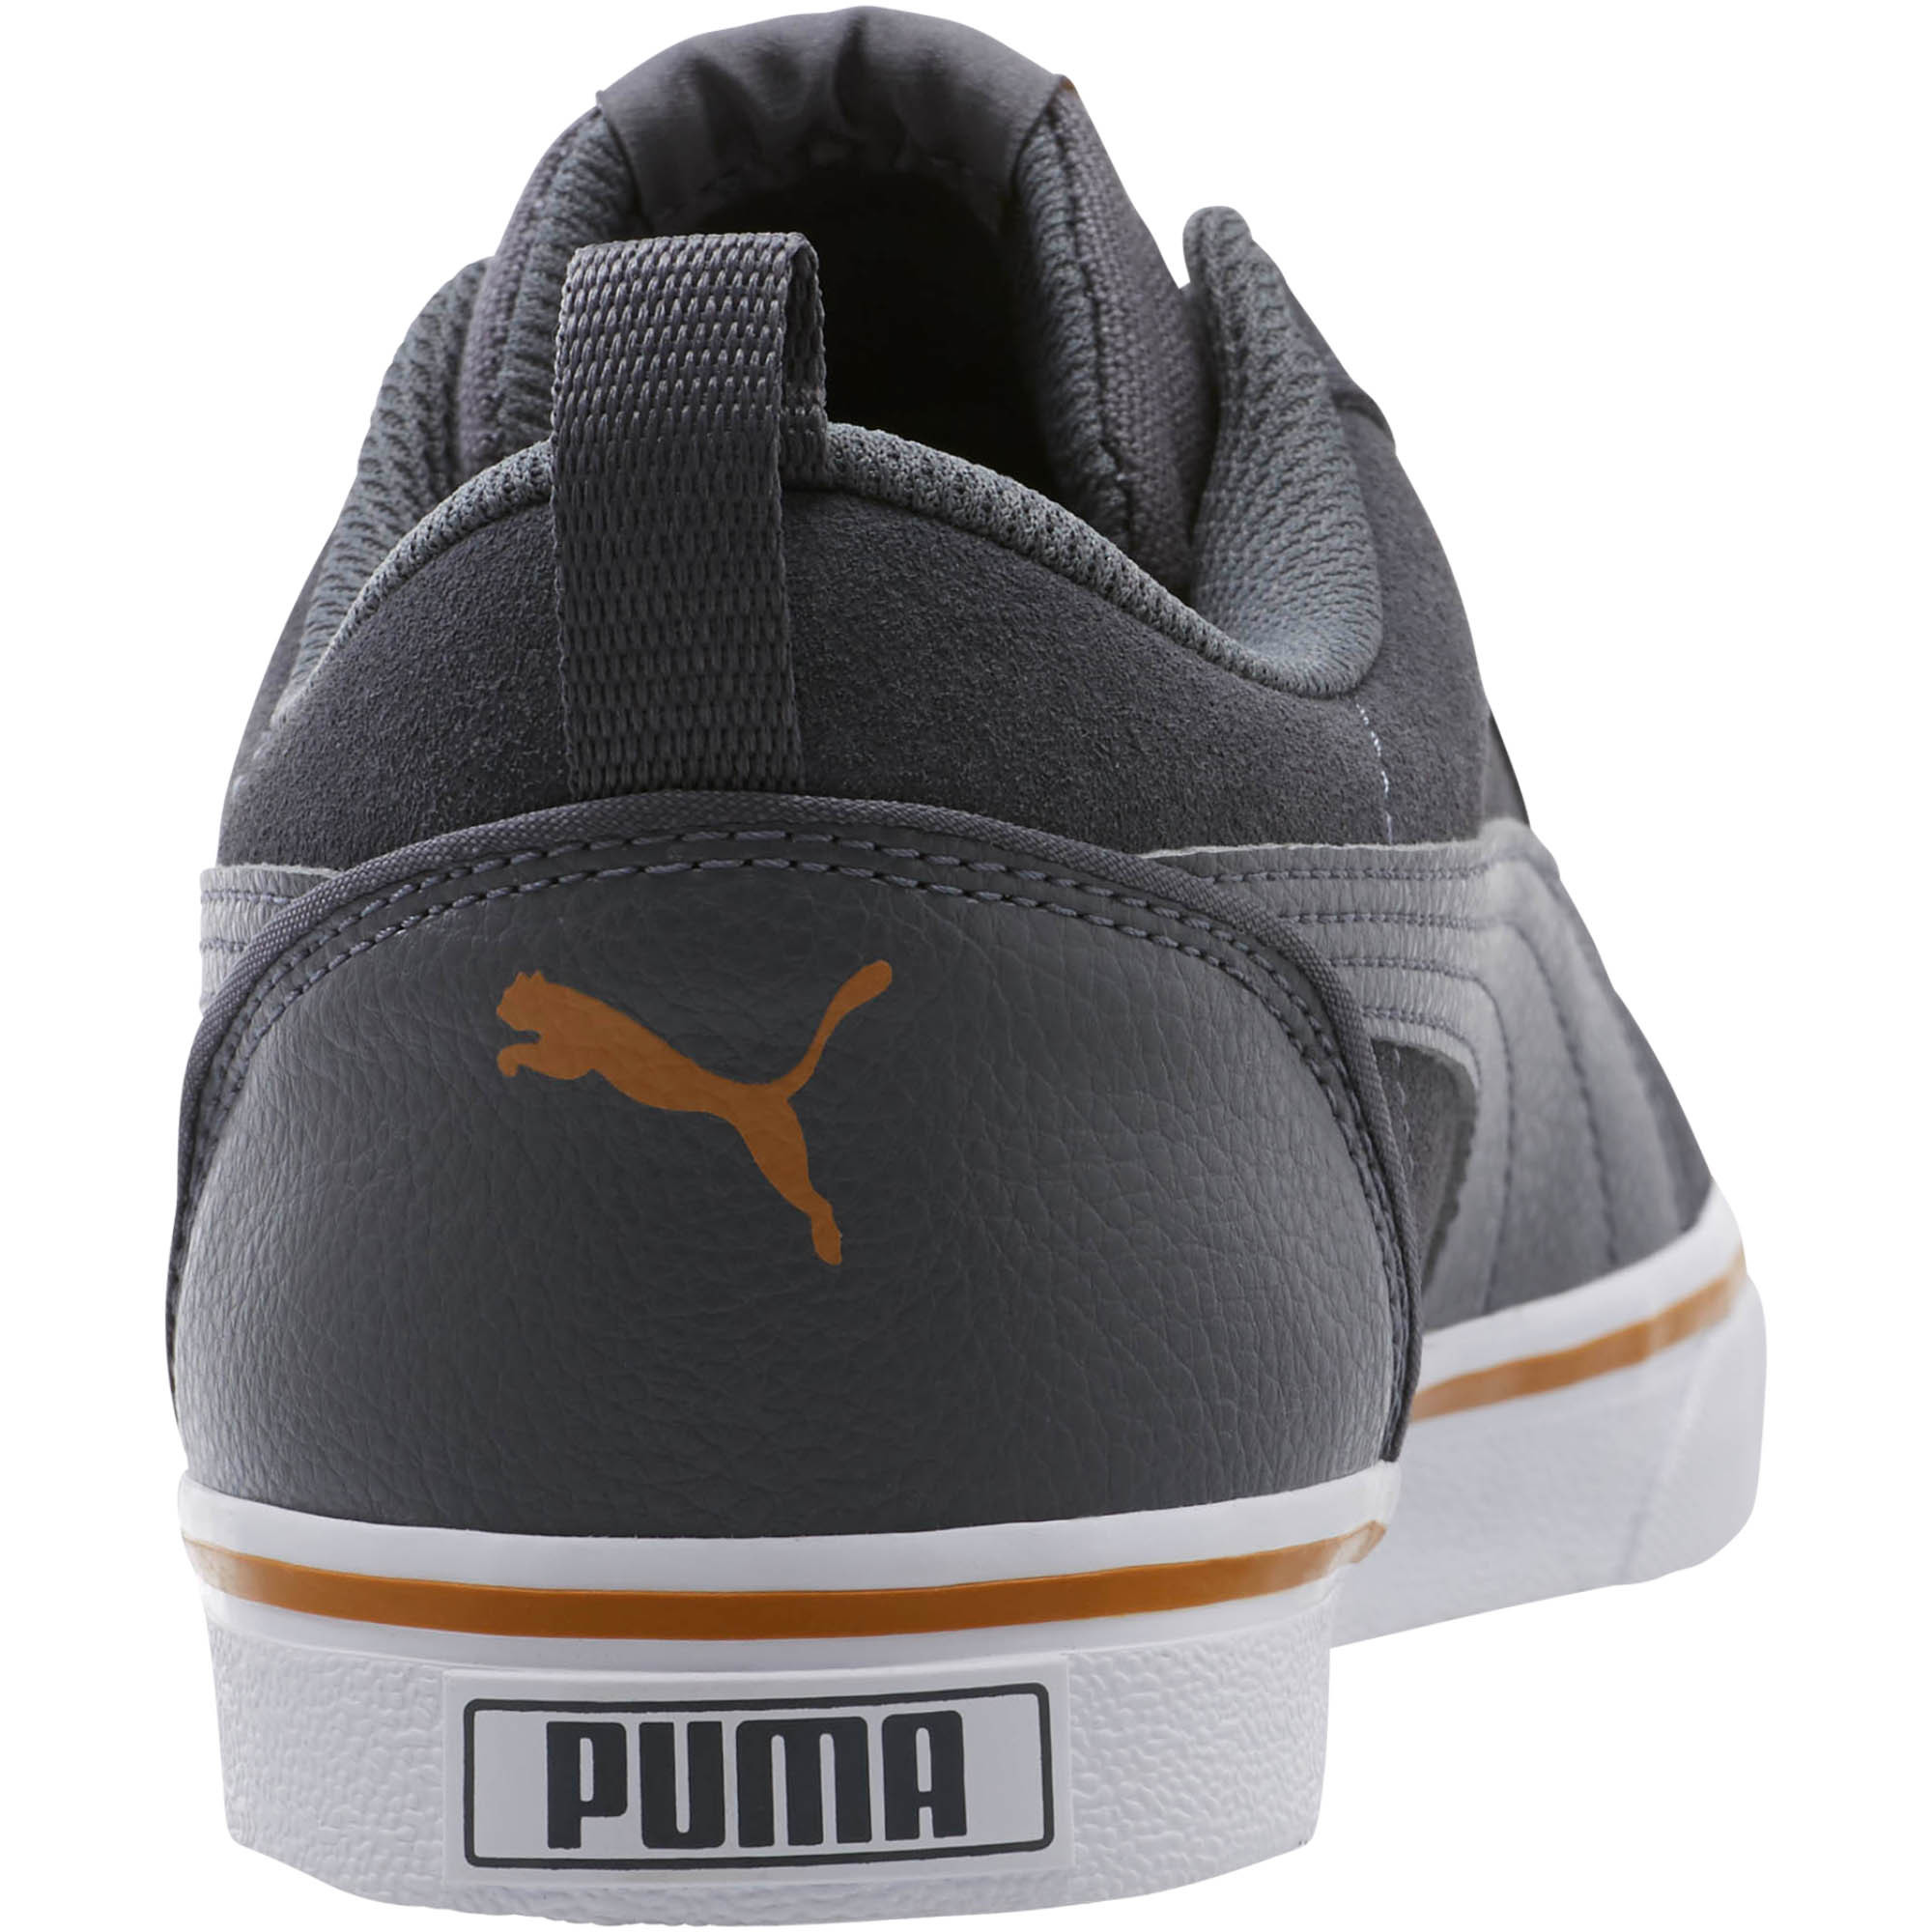 PUMA-Puma-Bridger-SD-Men-039-s-Sneakers-Men-Shoe-Basics thumbnail 13